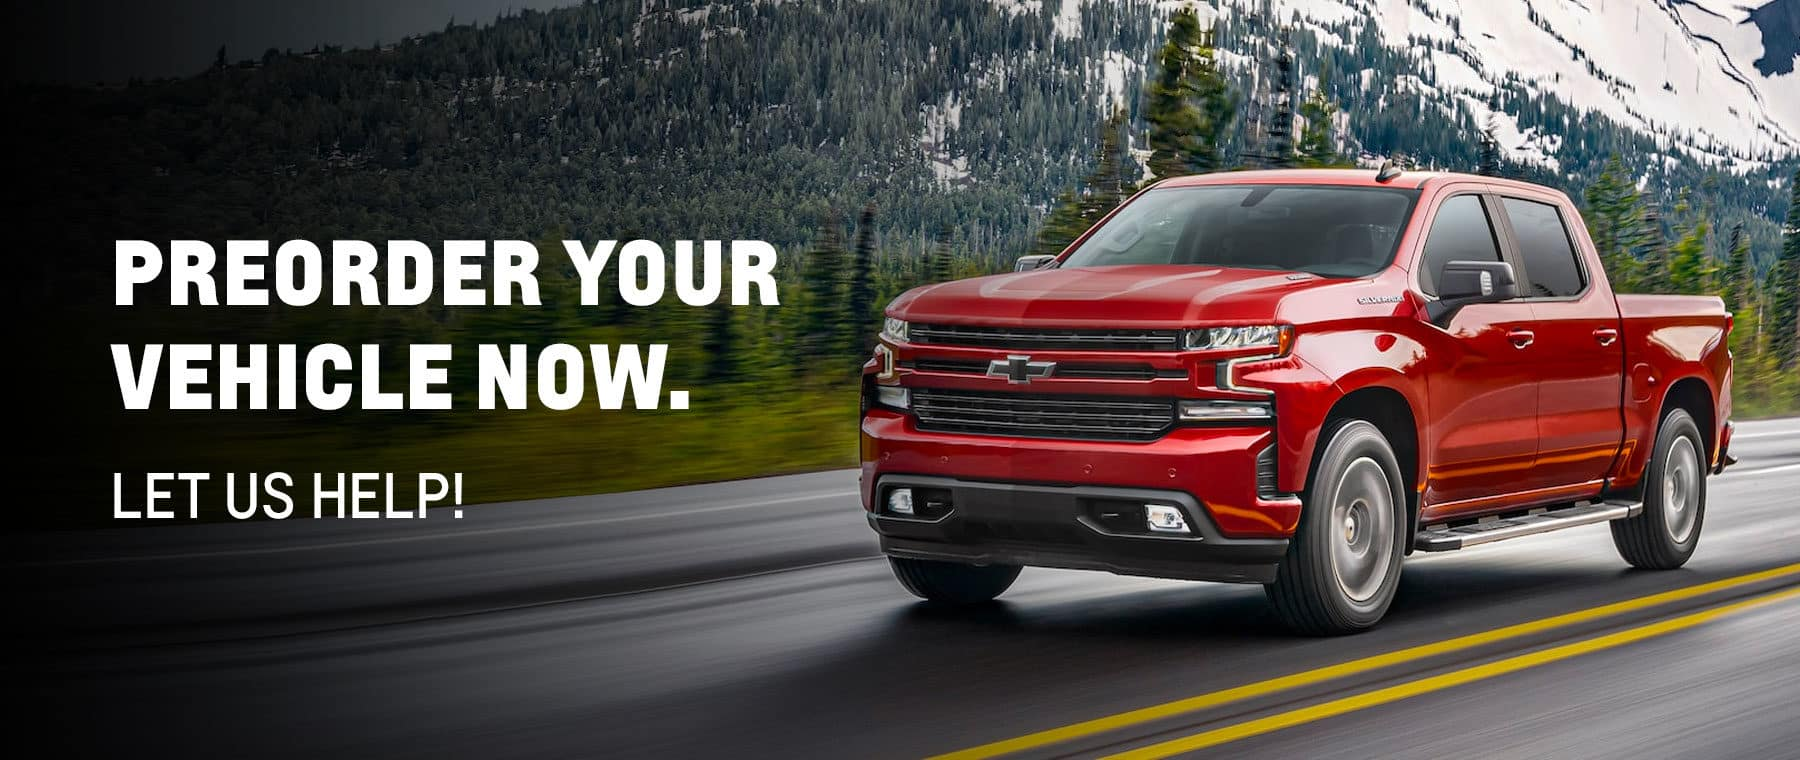 Preorder Your Vehicle Now! Let Us Help!